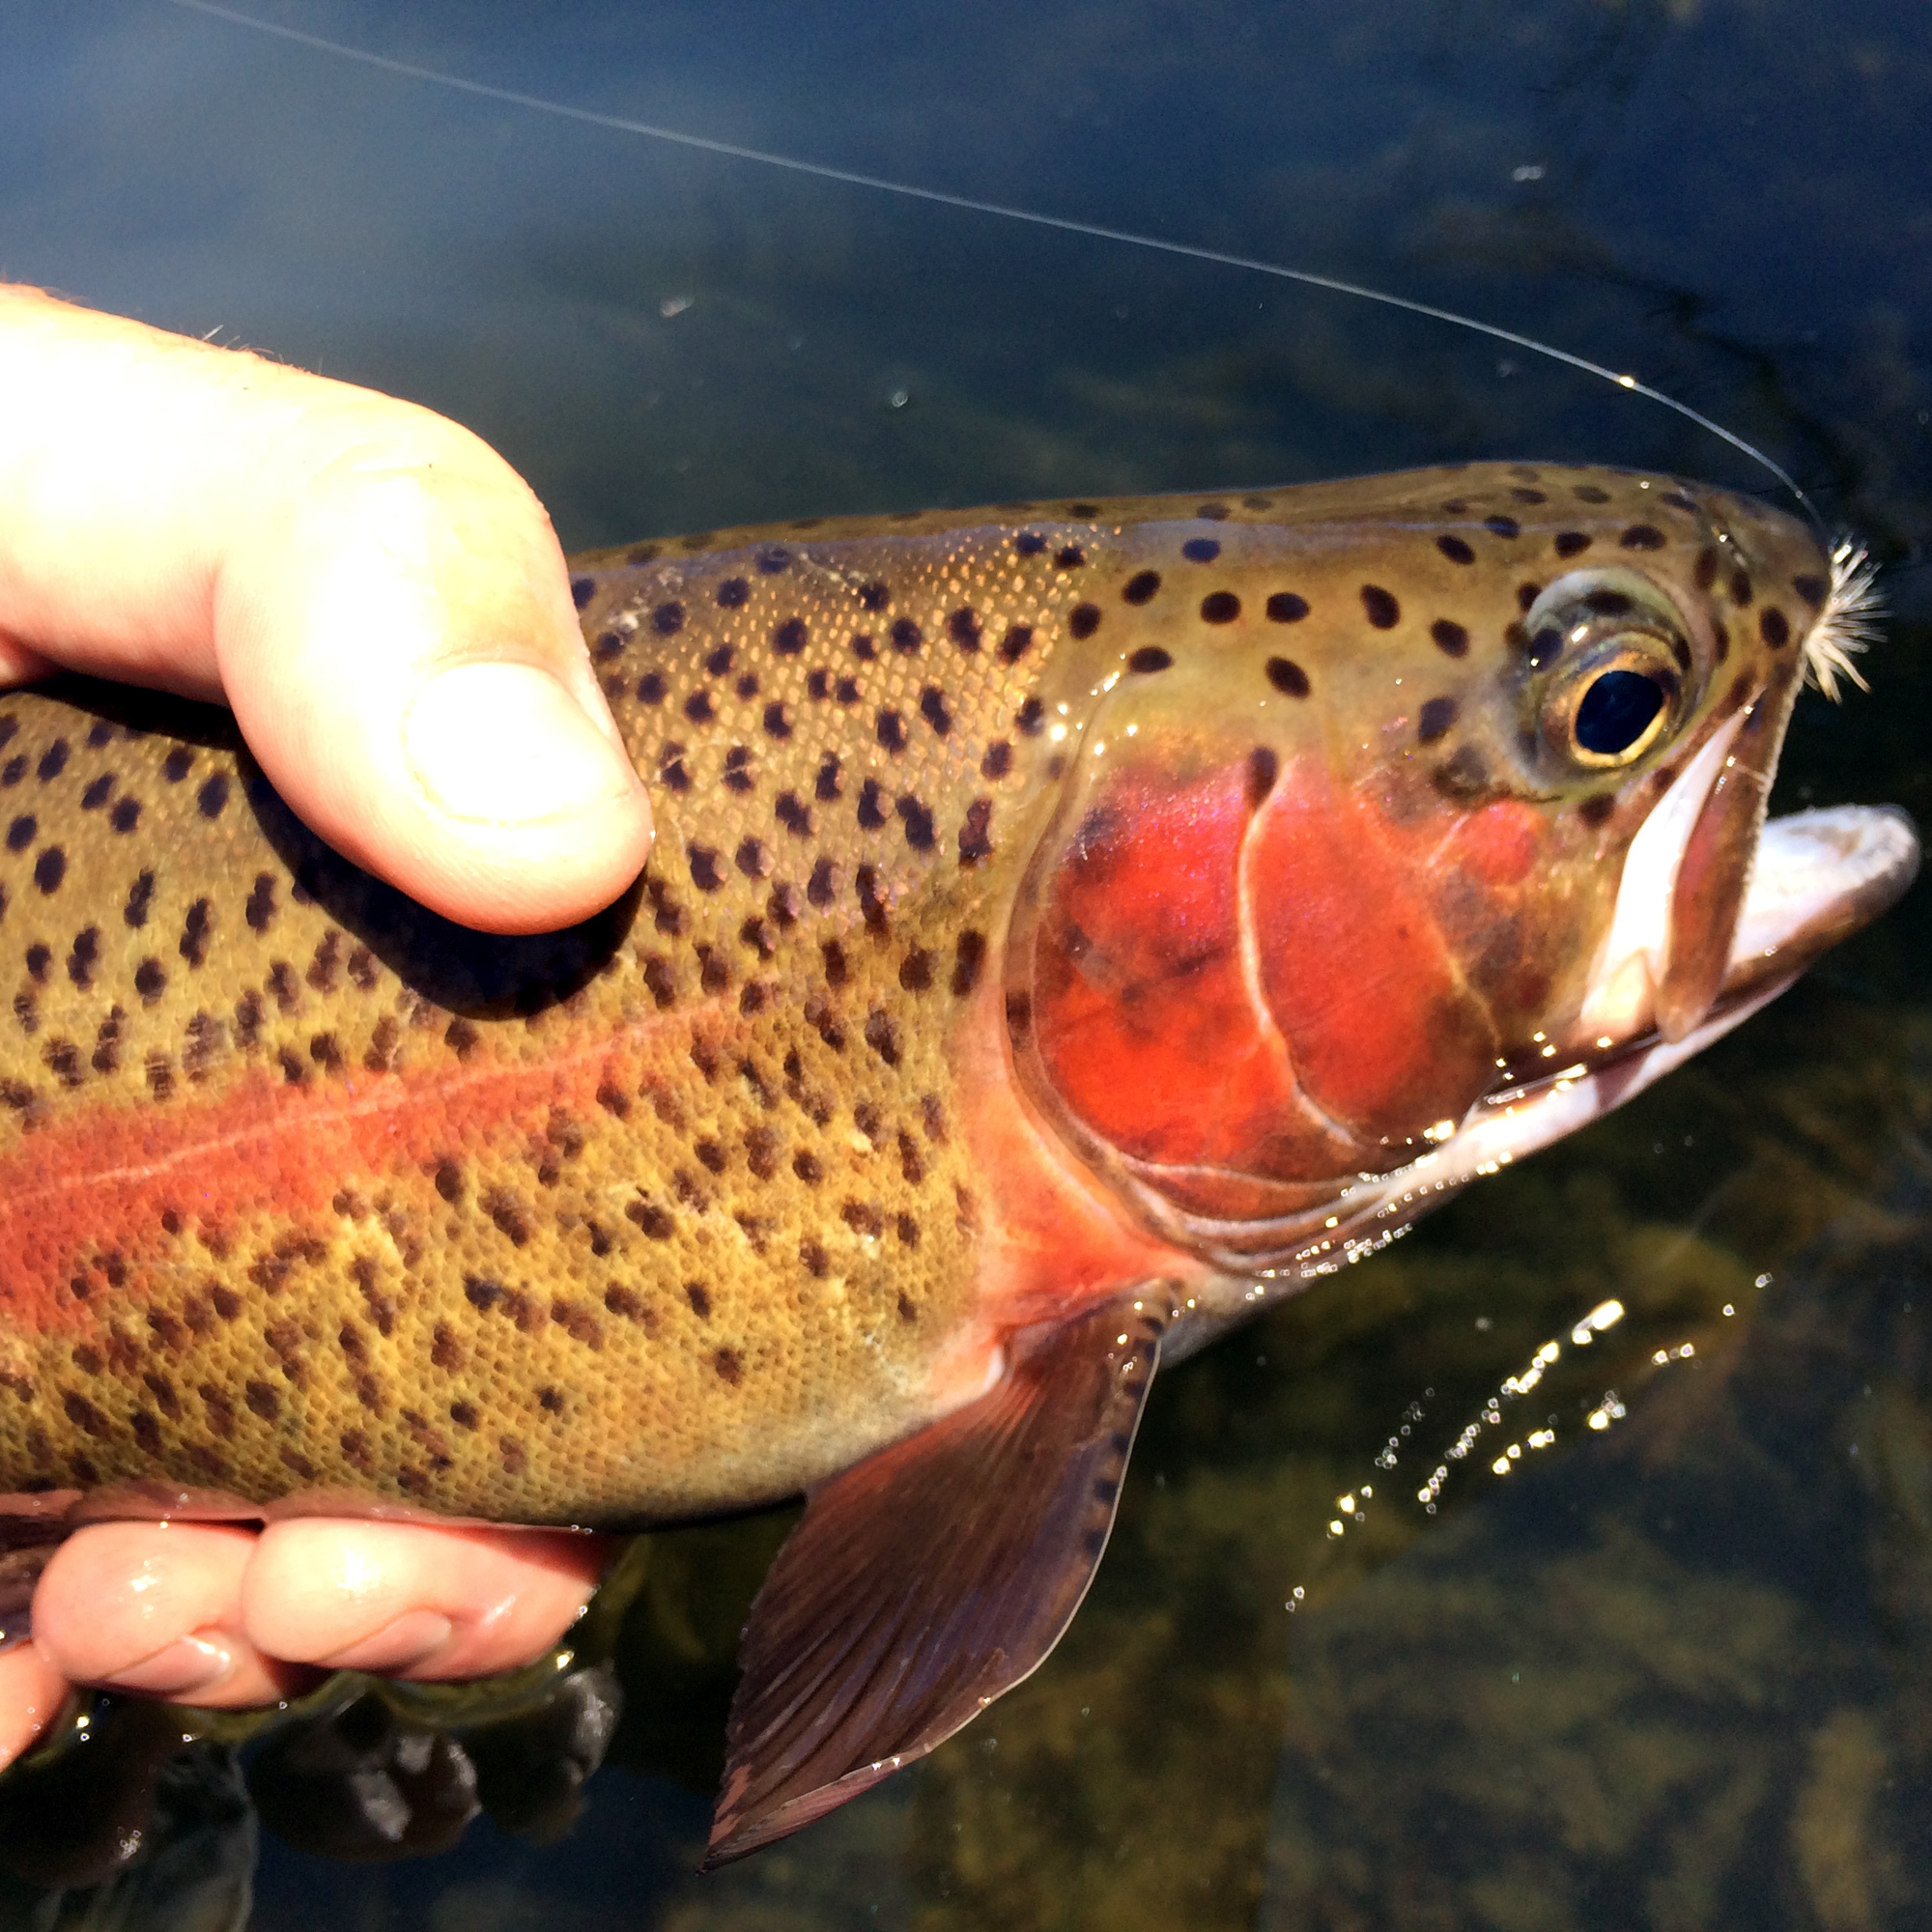 Small creek angler Alex Maxson was right at home bow casting and dapping under trees on the Deschutes, illustrating my point of fishing the stream within the river.